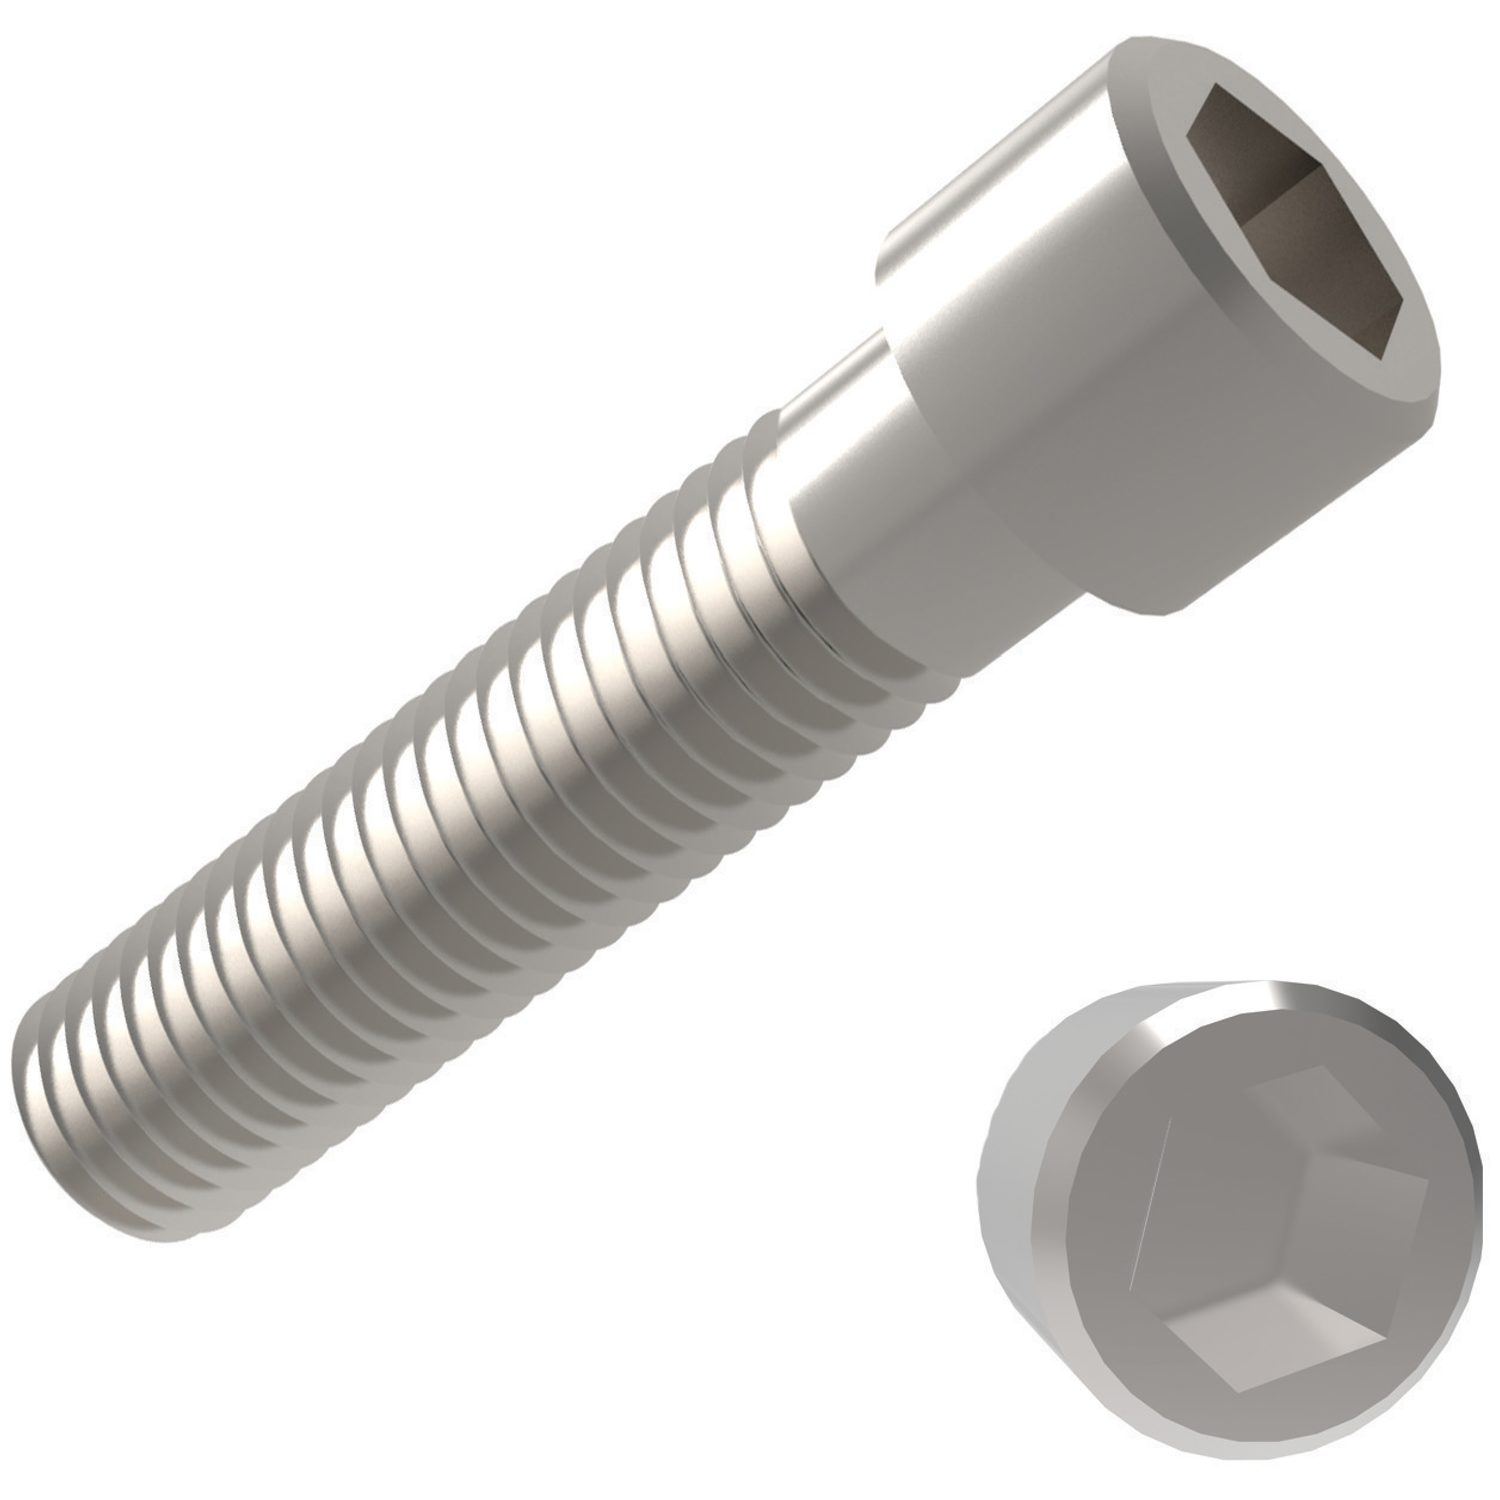 P0200.A4 - Socket Cap Screws